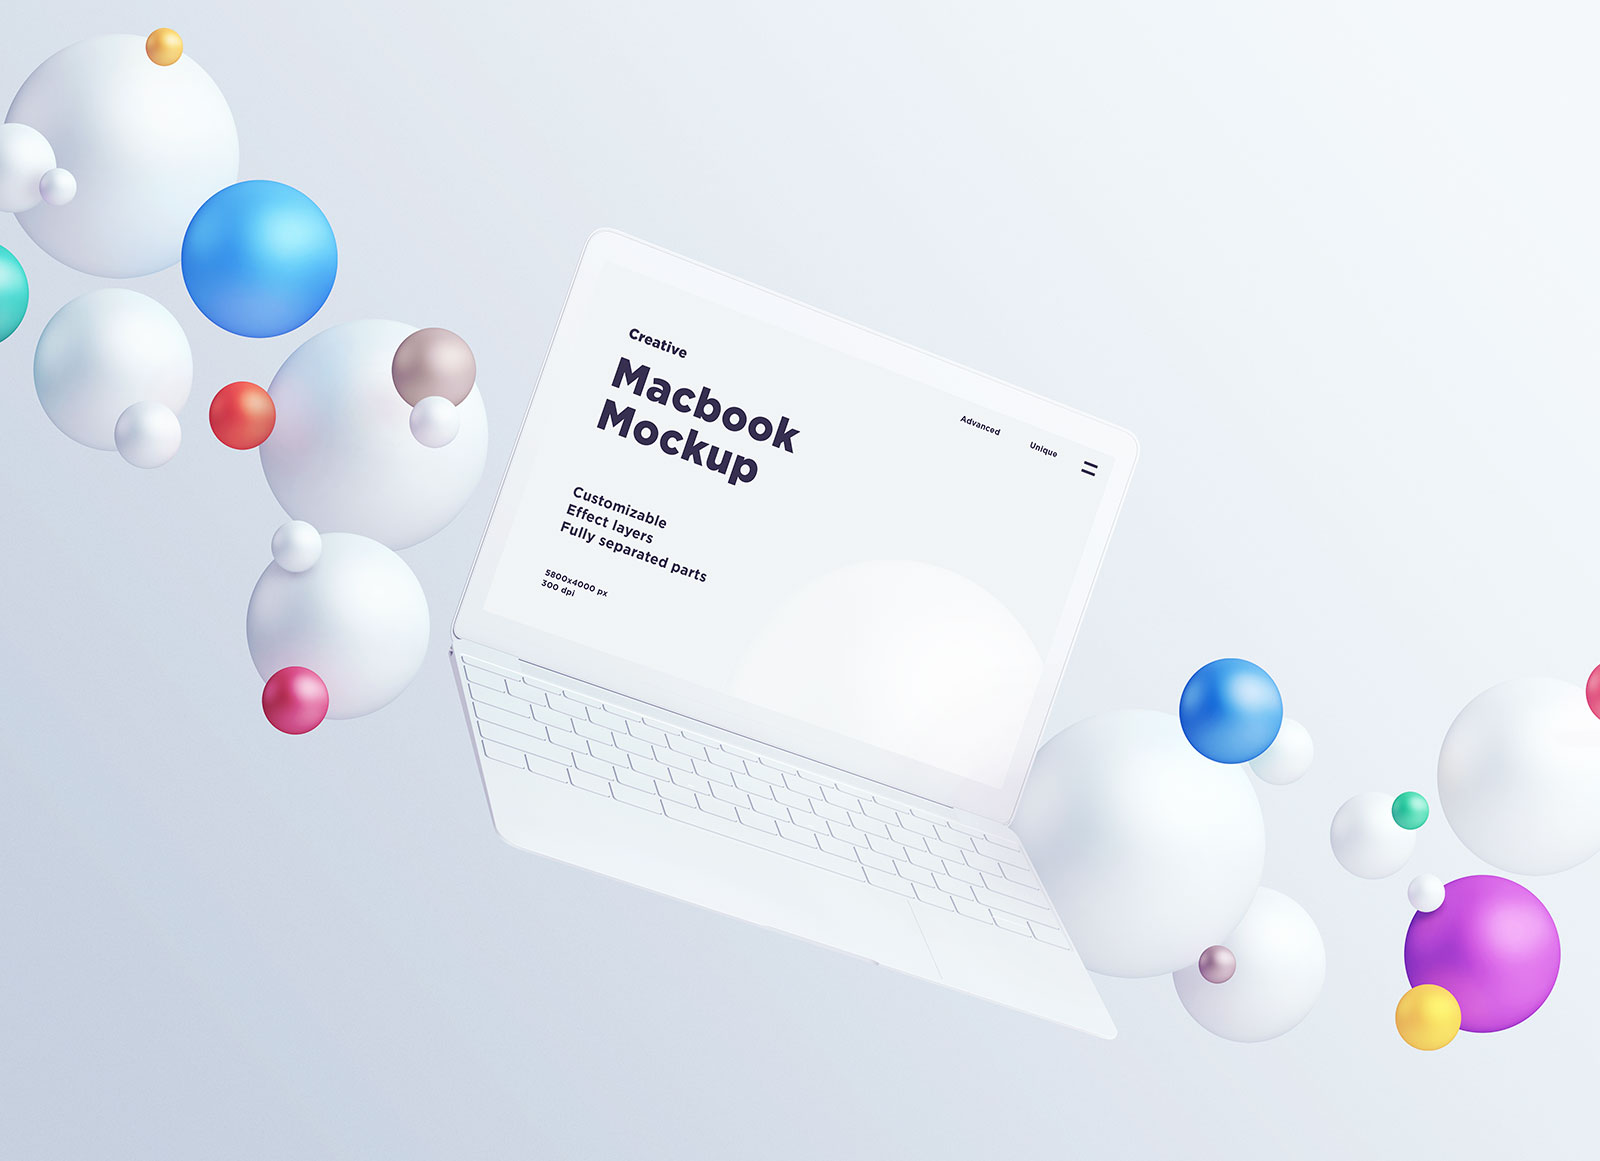 Free-Apple-Macbook-Mockup-with-Colorful-Spheres-3